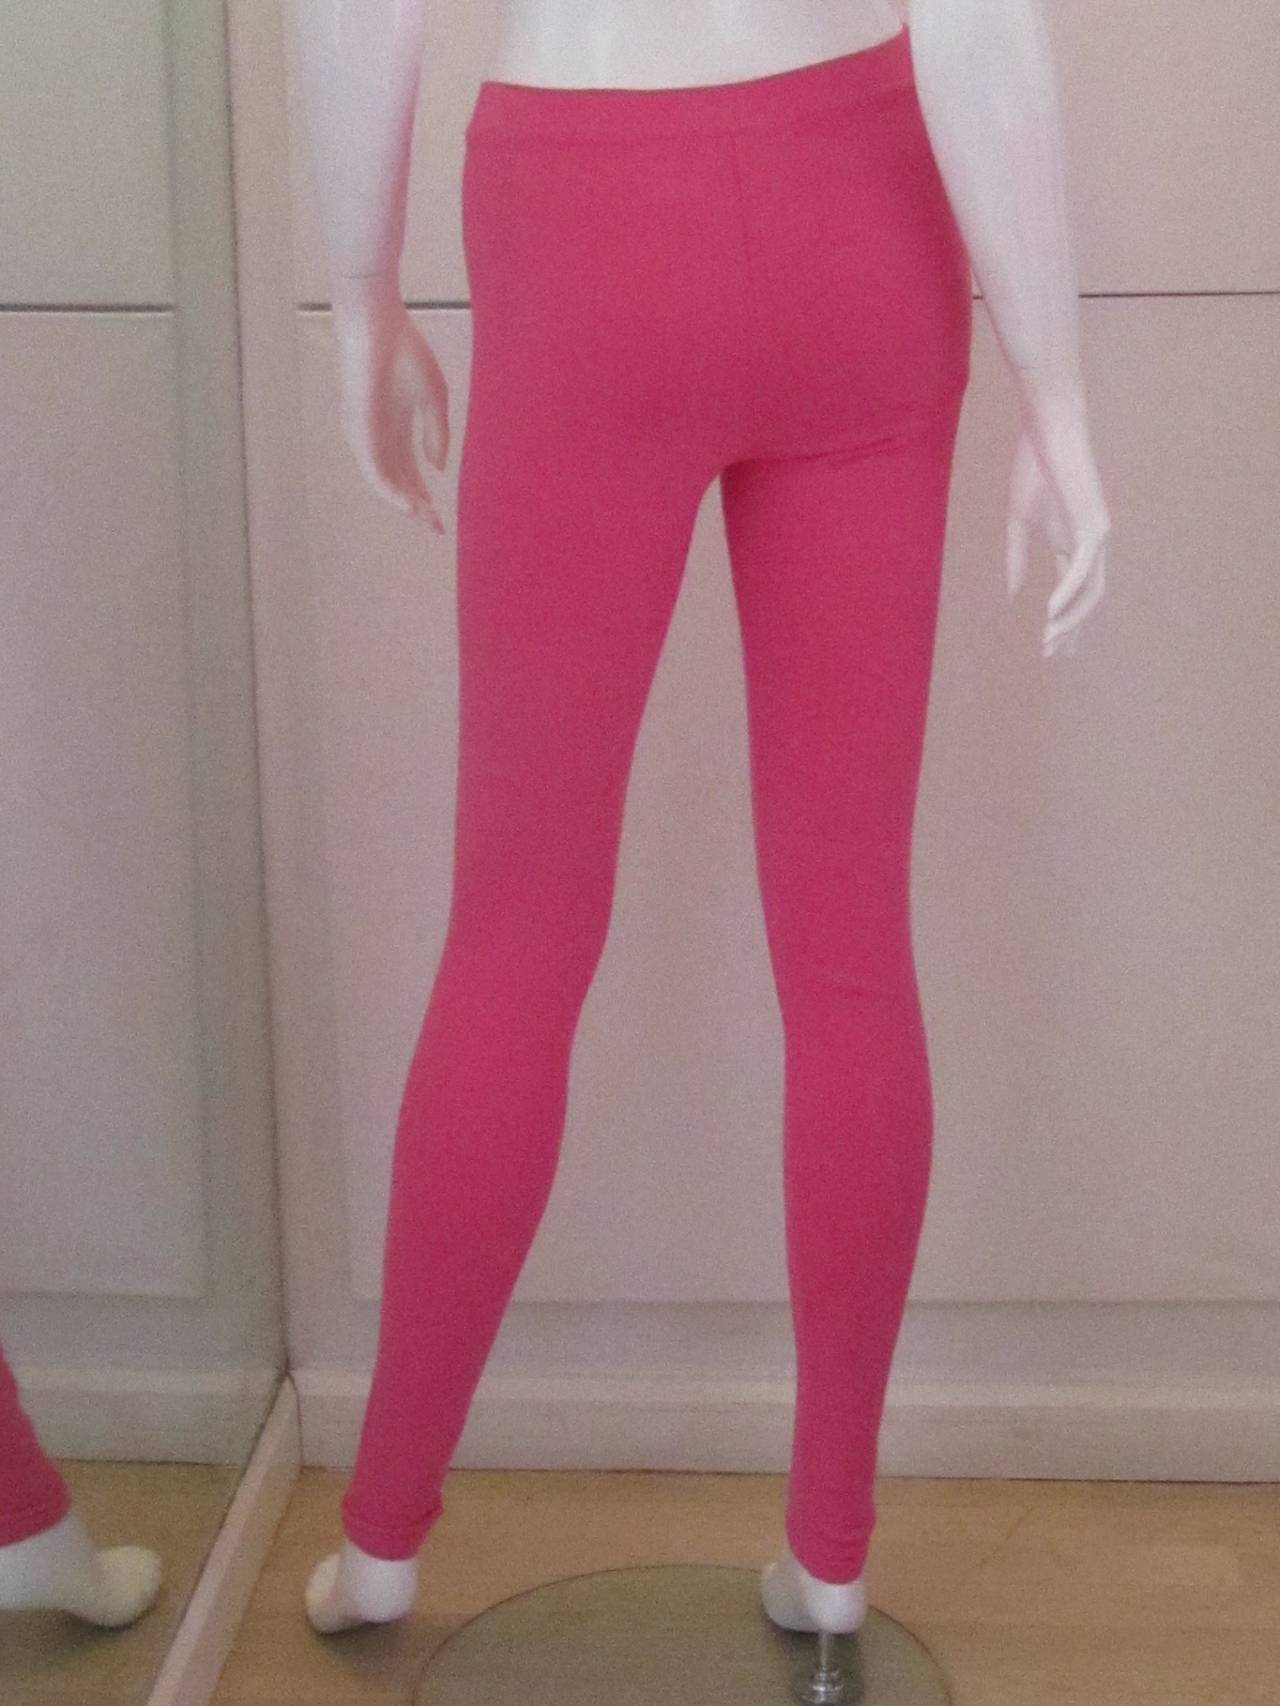 These hot pink Chanel leggings are a size 38. The fabric content is 76% viscose - rayon. 24% polyester. They are made in Italy. The pants have been worn once and they are stretch pants so depending upon size wear them loose or tight, though they are